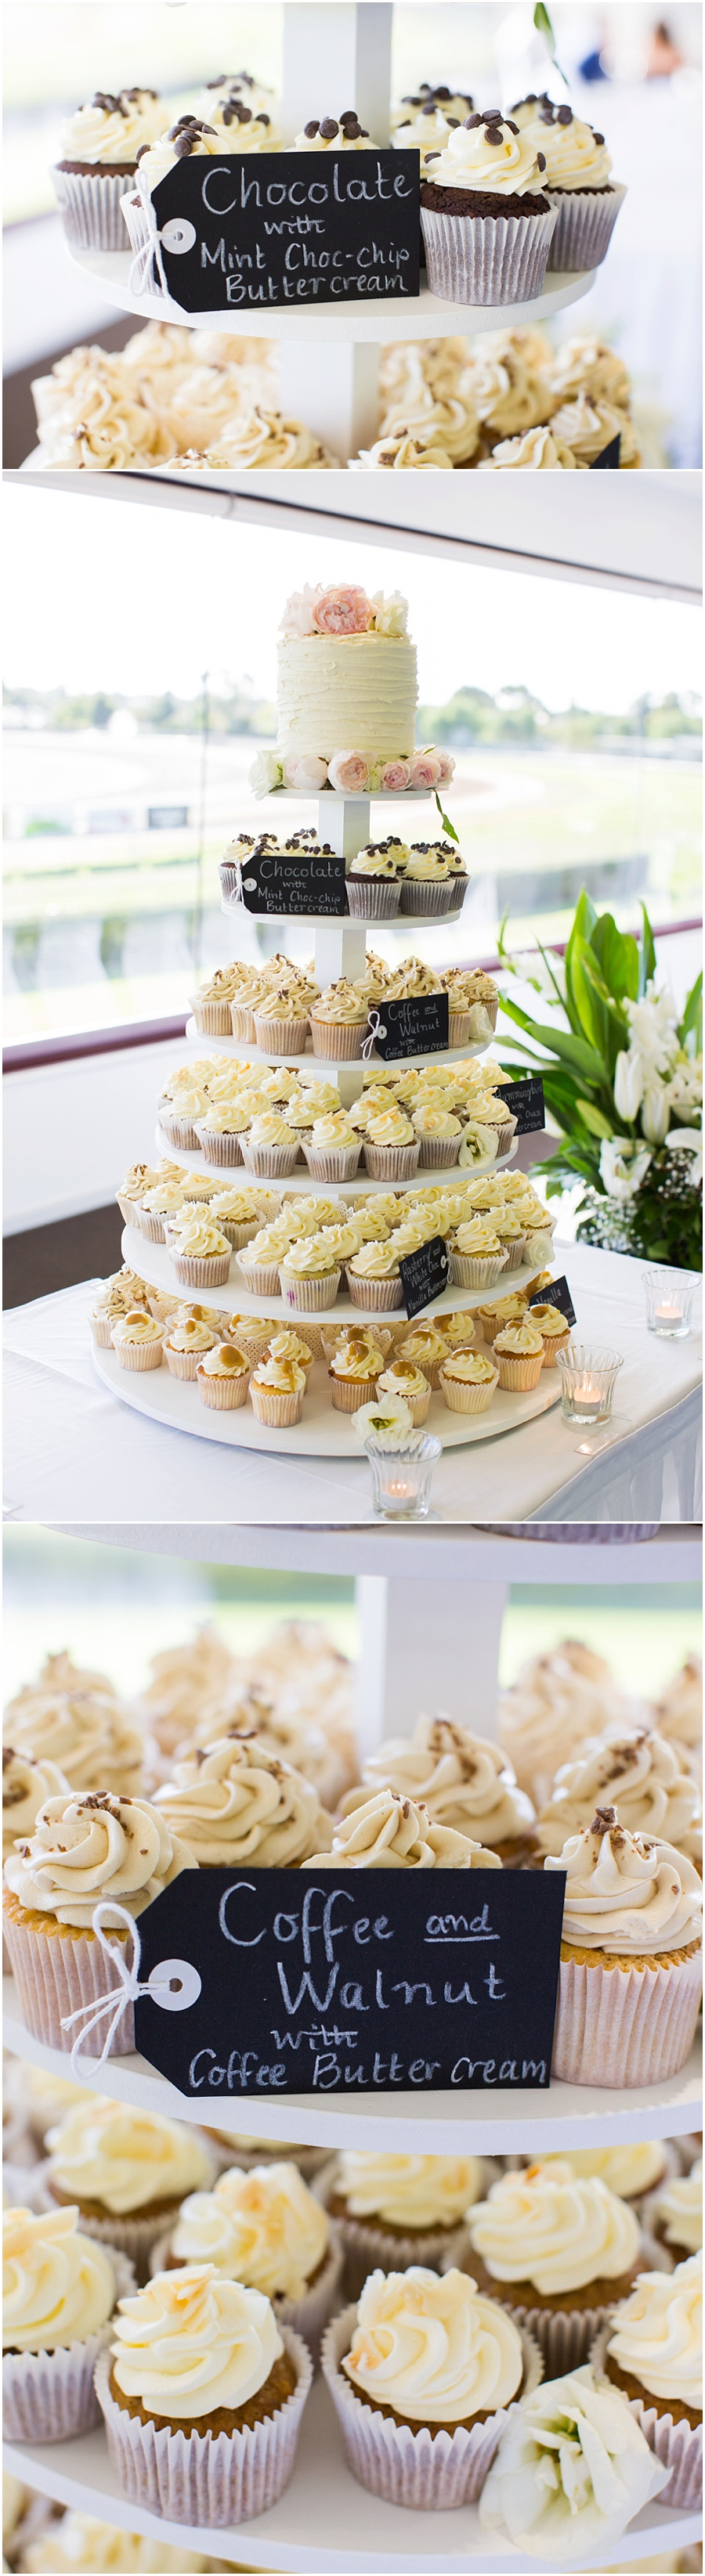 Daylesford Wedding Photographer_0068